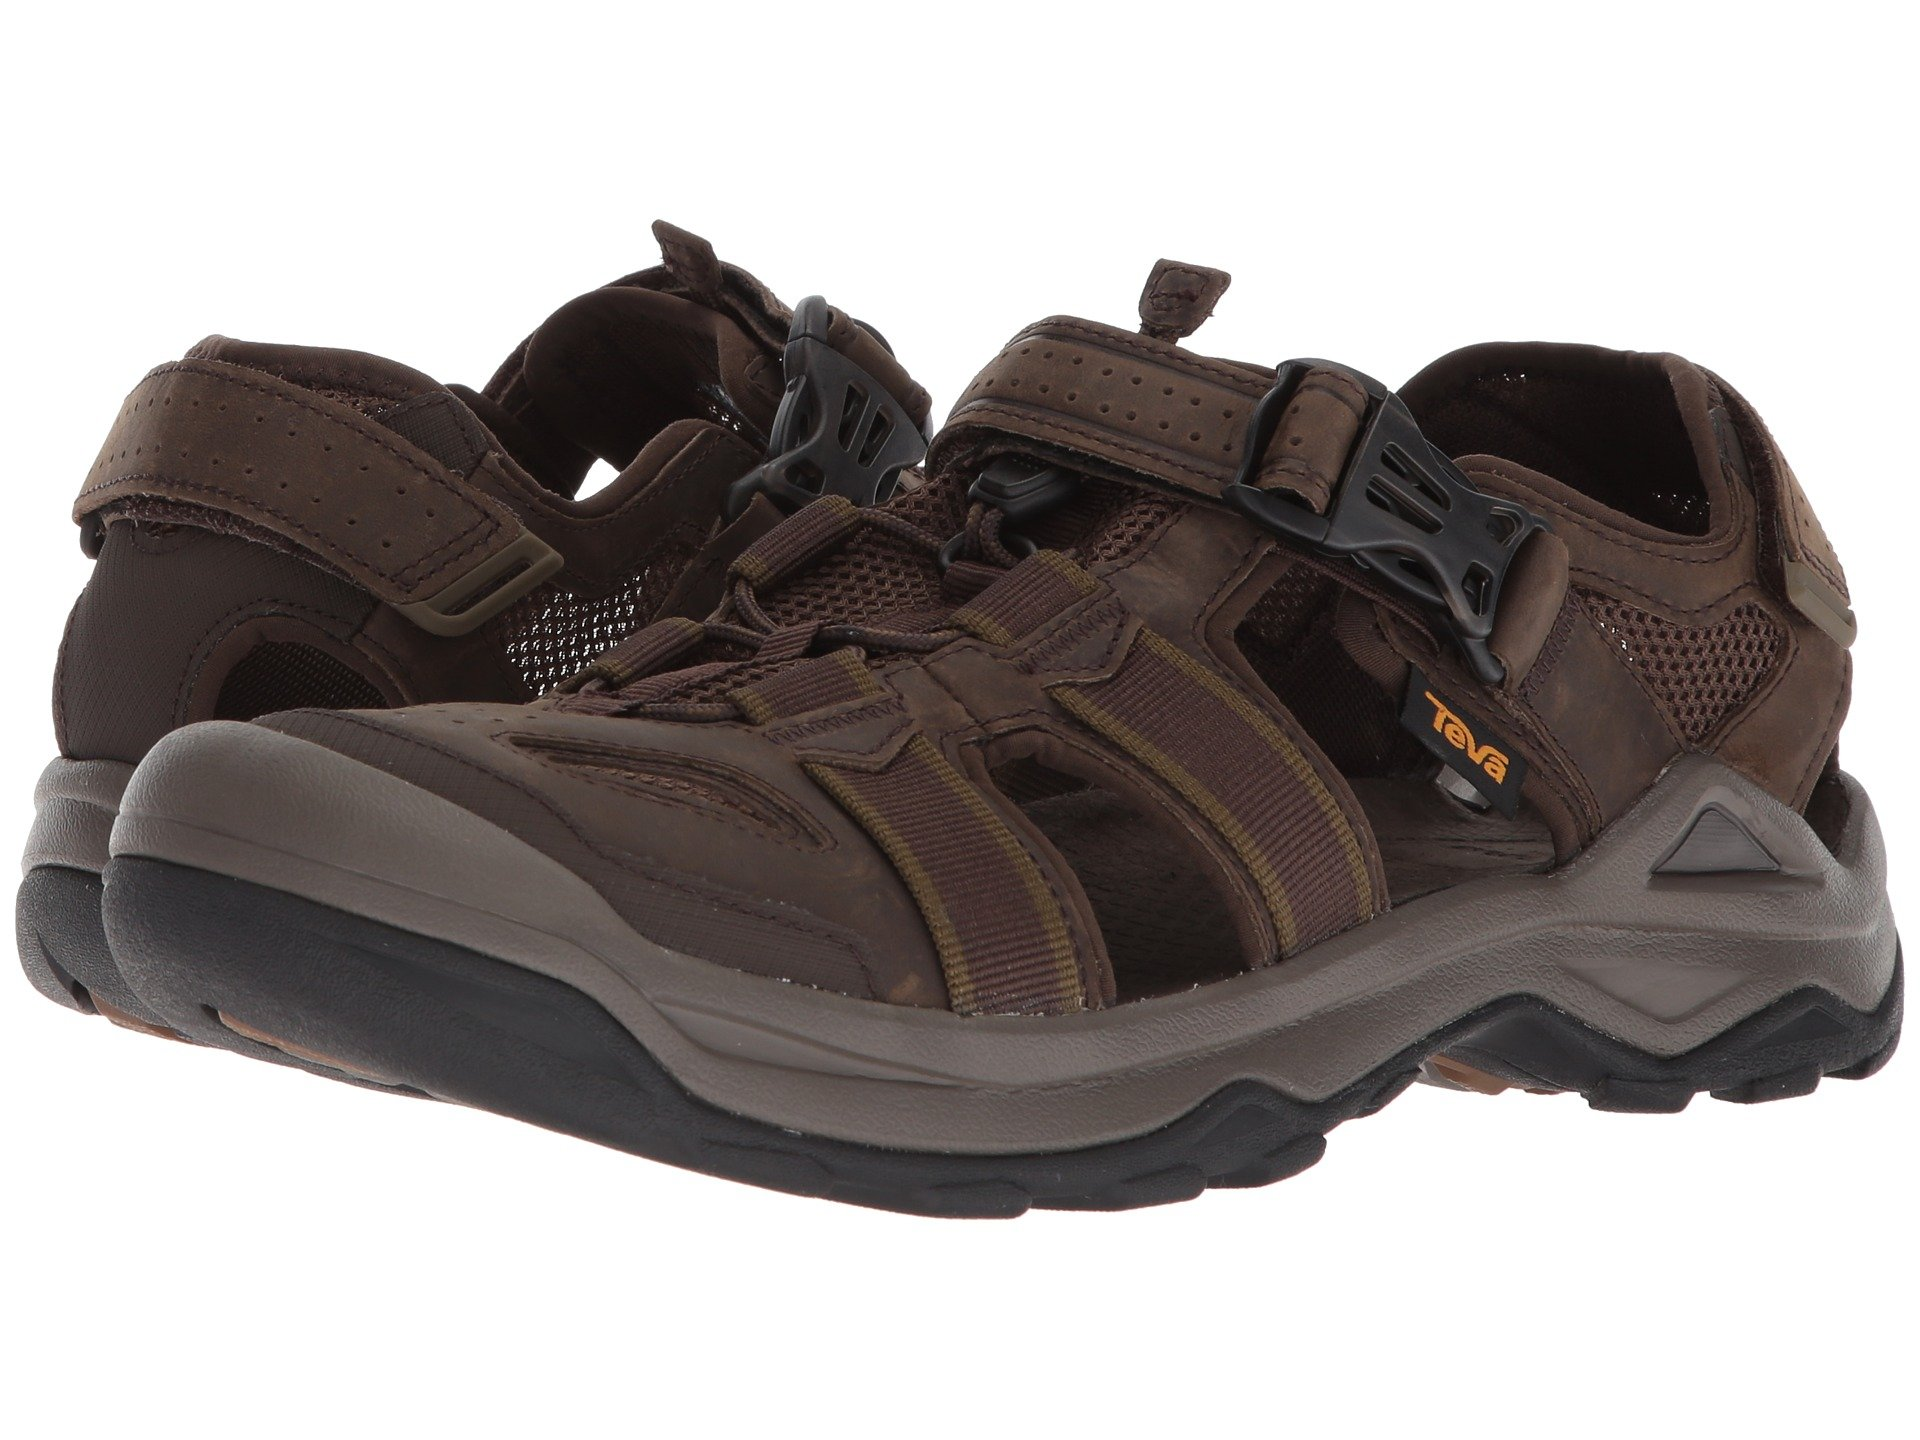 bc6b605bff6e Men s Non-Marking Sole Teva Sandals + FREE SHIPPING